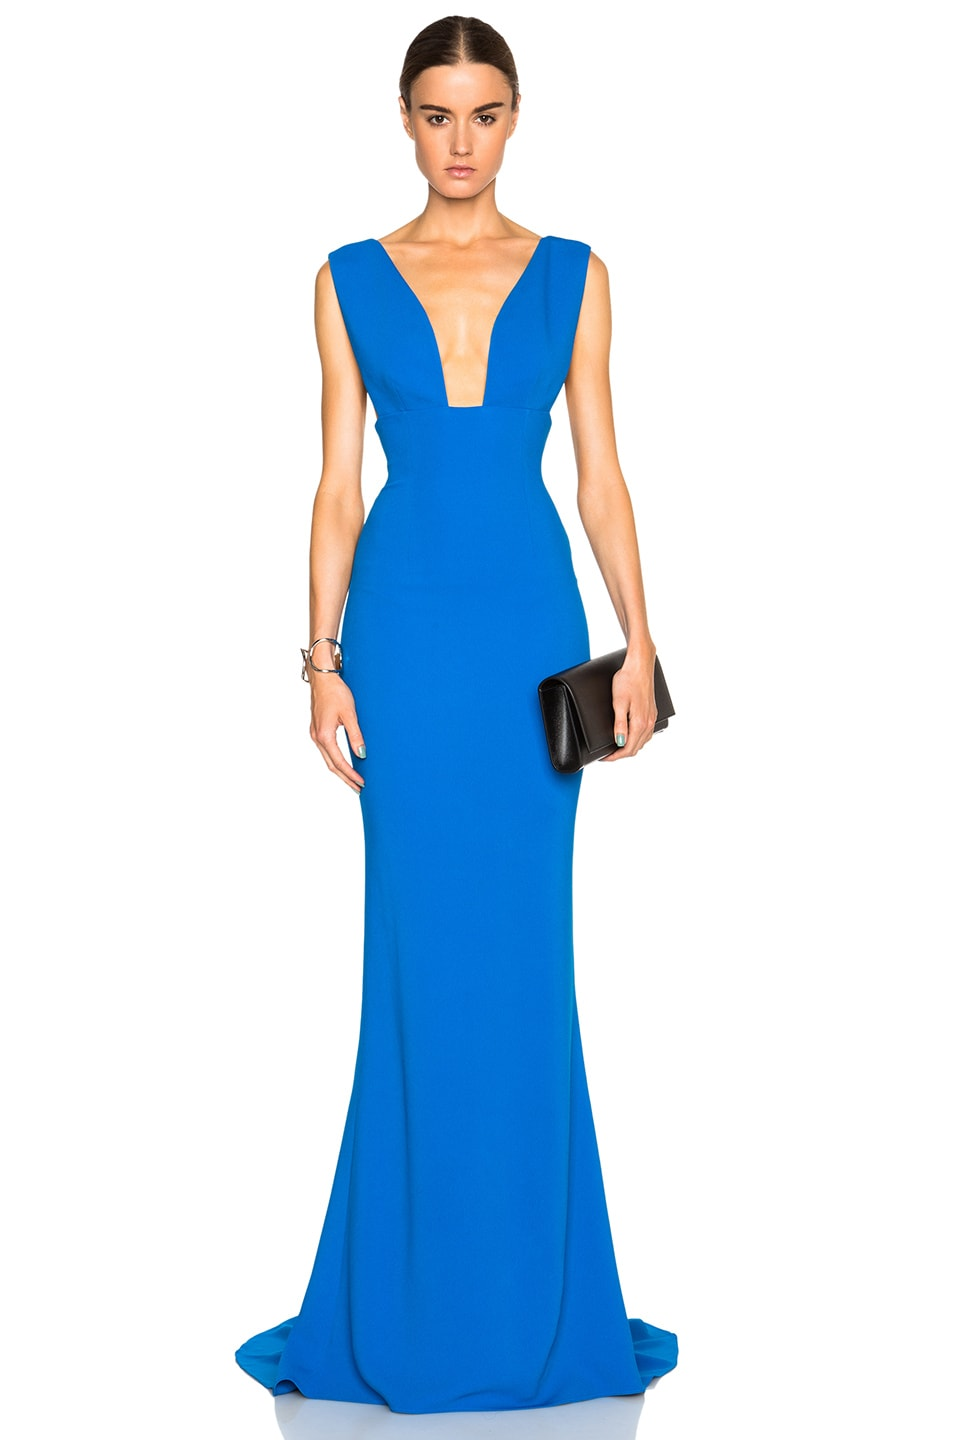 Stella McCartney Kimberly Dress in Bright Blue | FWRD